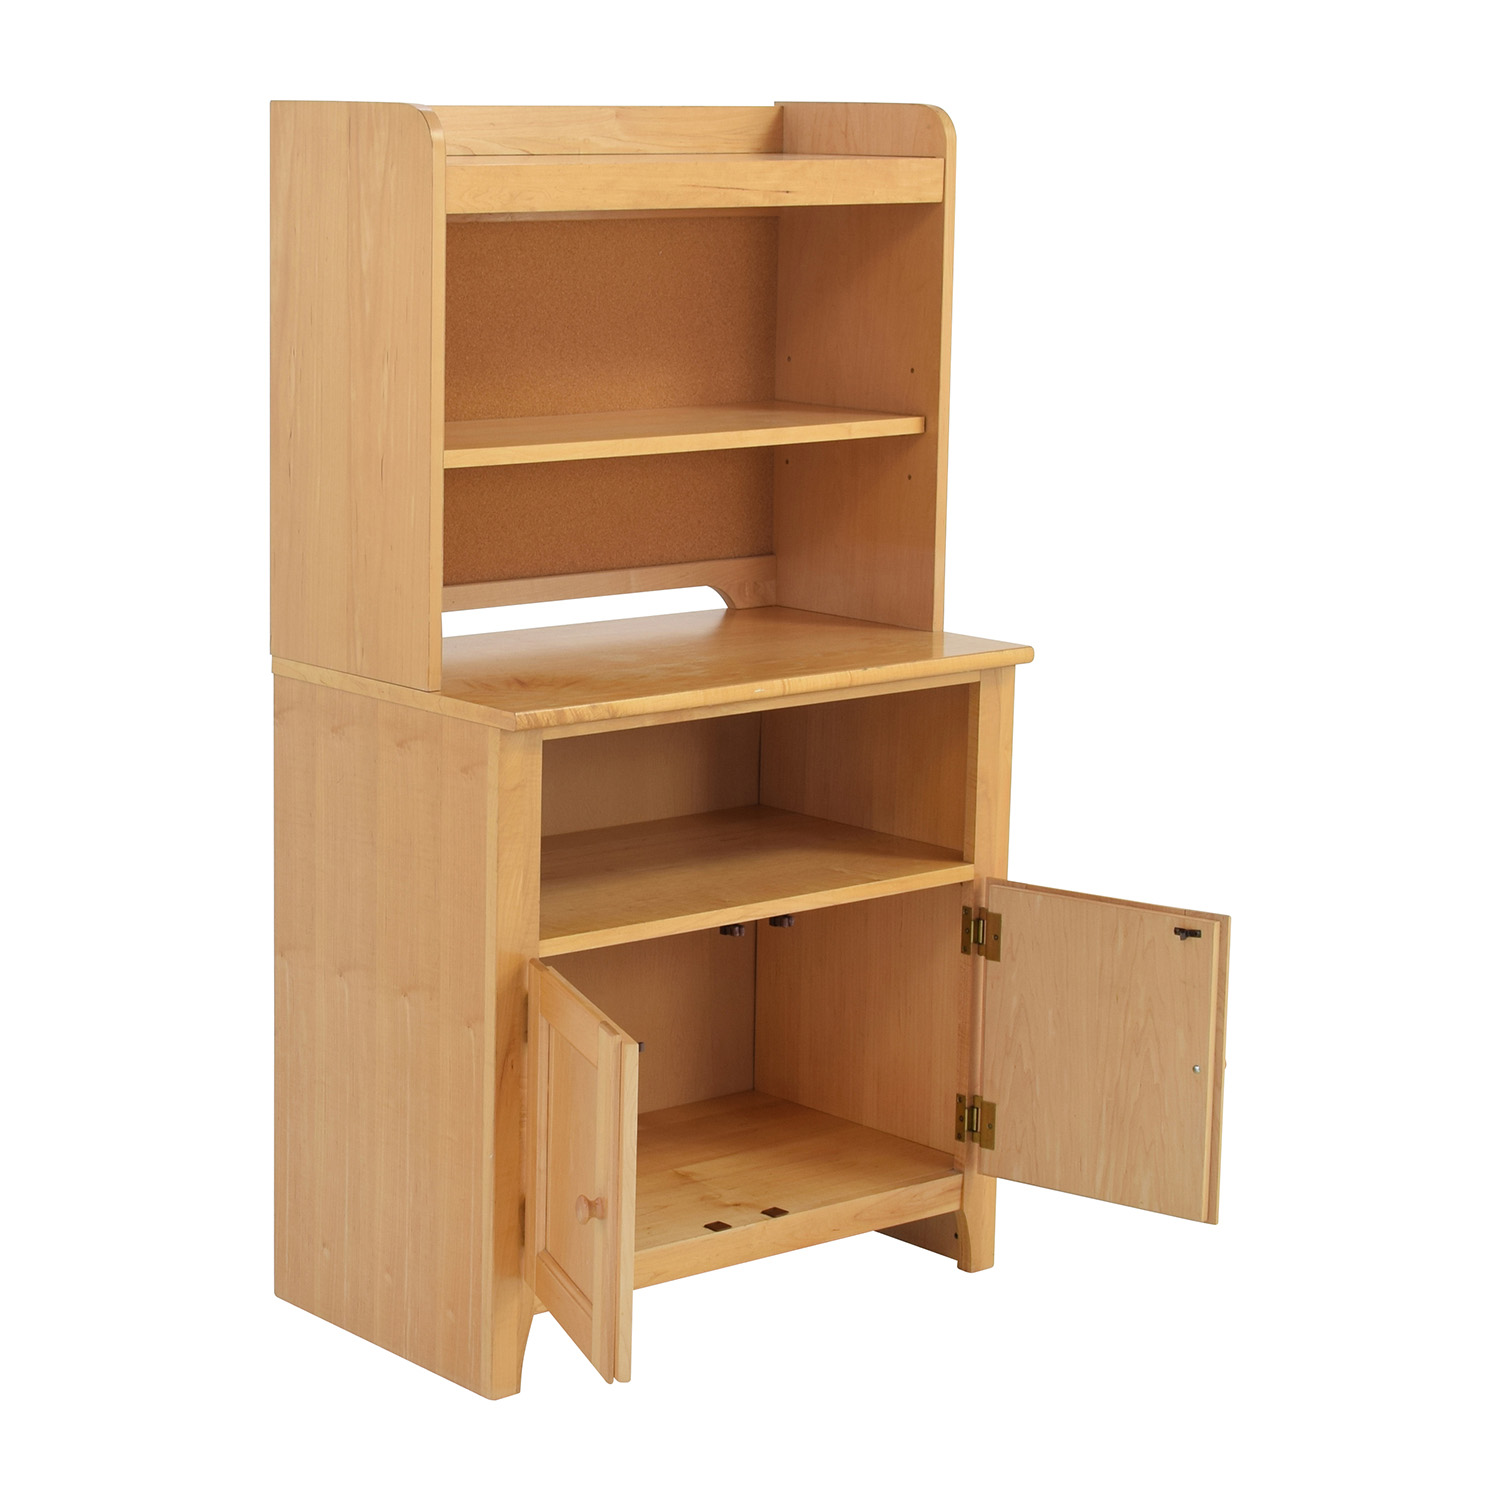 Stanley Furniture Maple Hutch Bookcases Shelving